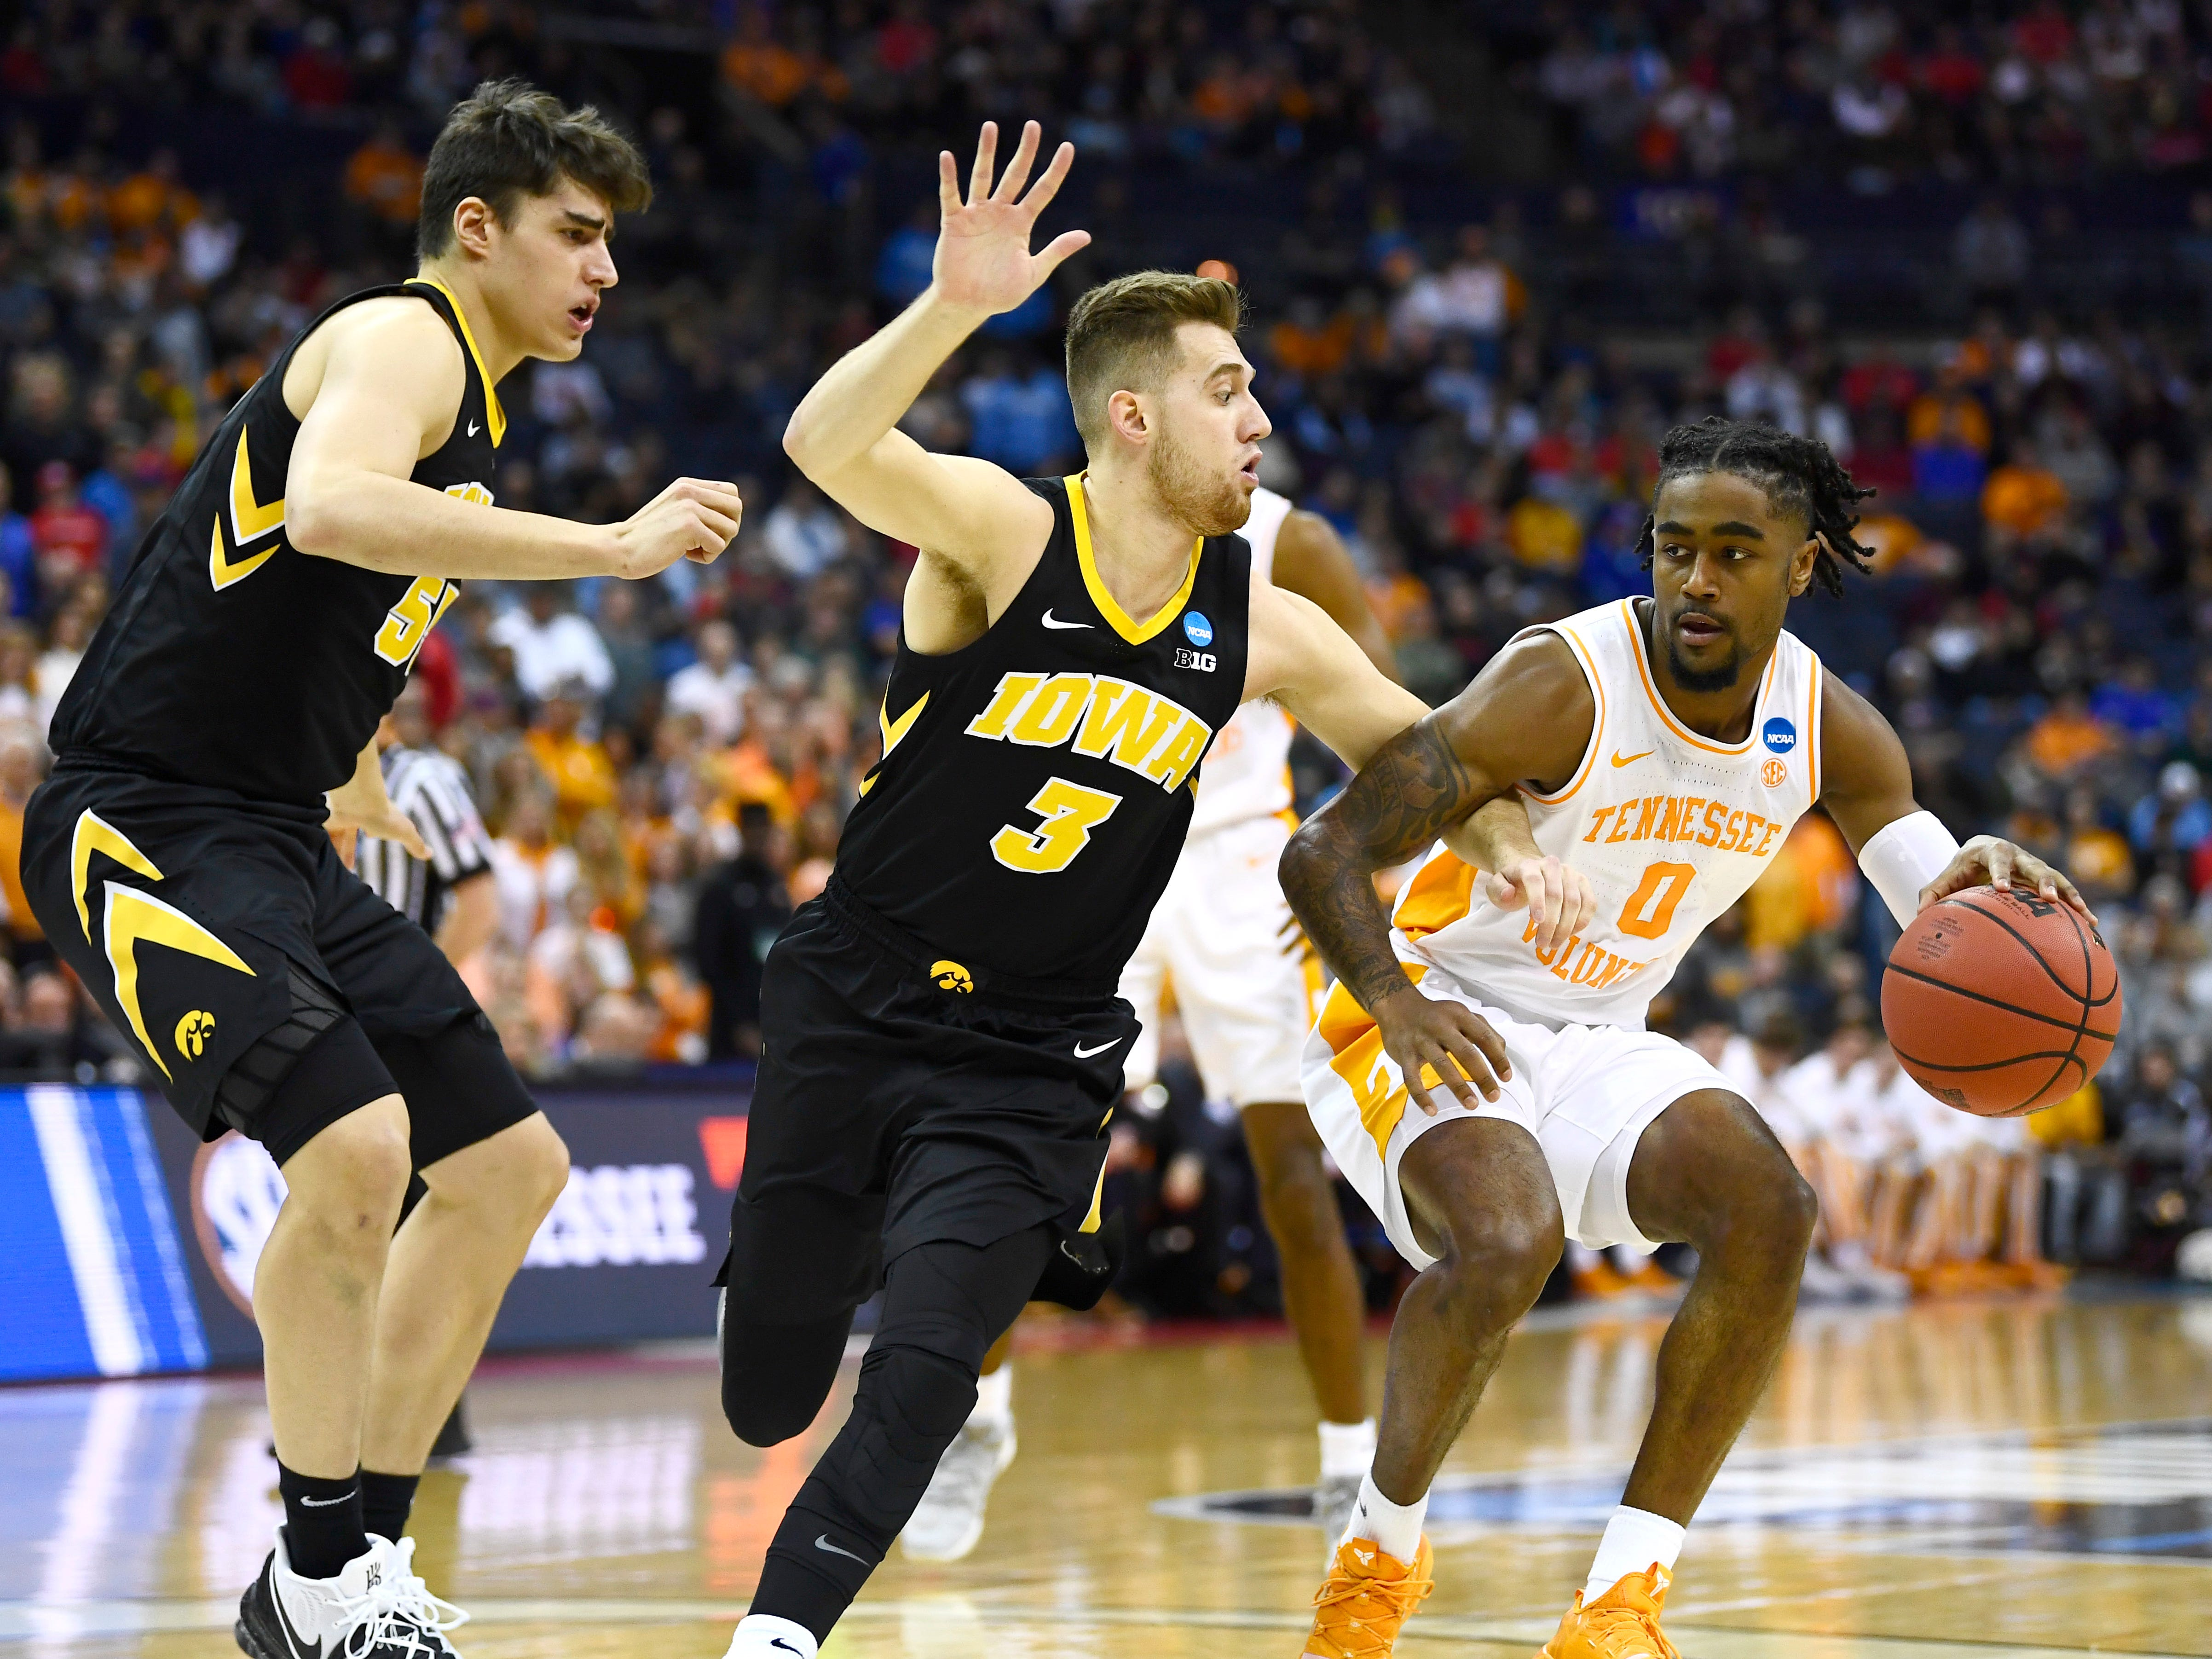 Tennessee guard Jordan Bone (0) drives on Iowa guard Jordan Bohannon (3) during the first half of the Tennessee VolunteersÕ basketball game against the Iowa Hawkeyes in the second round of the NCAA Tournament at Nationwide Arena in Columbus, Ohio, Sunday, March 24, 2019.